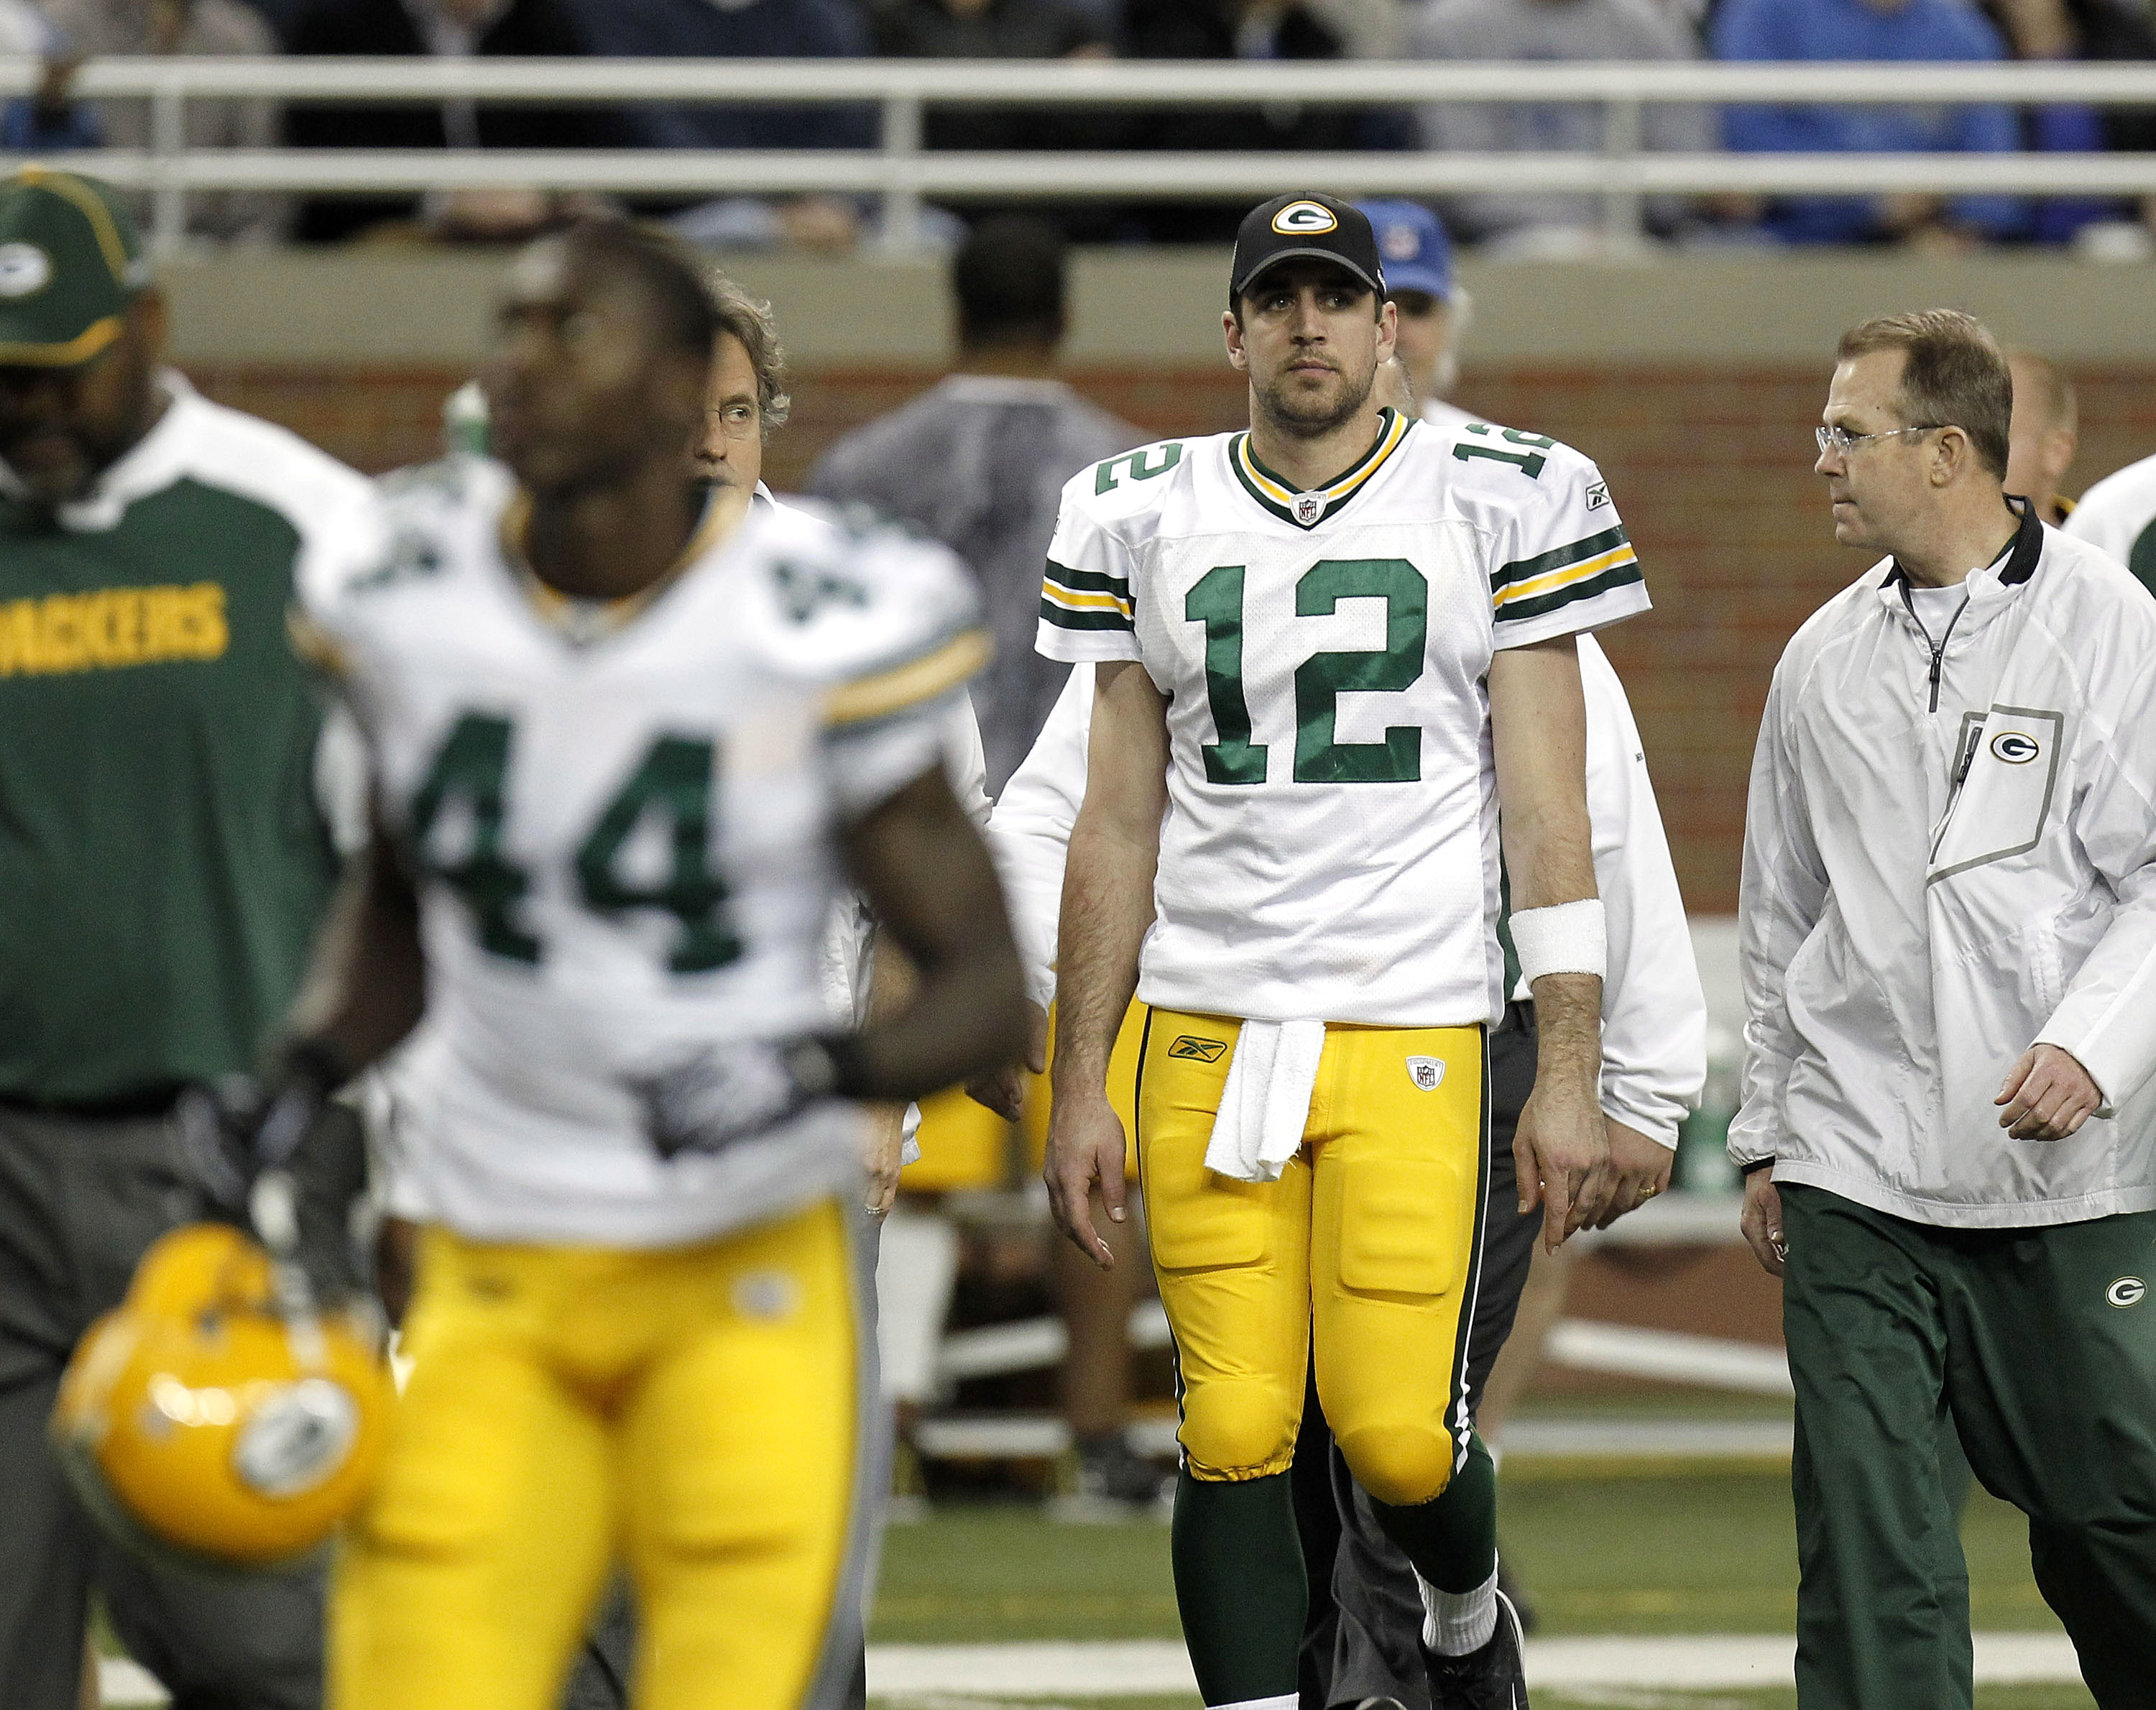 DETROIT, MI - DECEMBER 12:  Aaron Rodgers #12 of the Green Bay Packers leaves the field at halftime after leaving the game with a concussion while playing the Detroit Lions on December 12, 2010 at Ford Field in Detroit, Michigan.  (Photo by Gregory Shamus